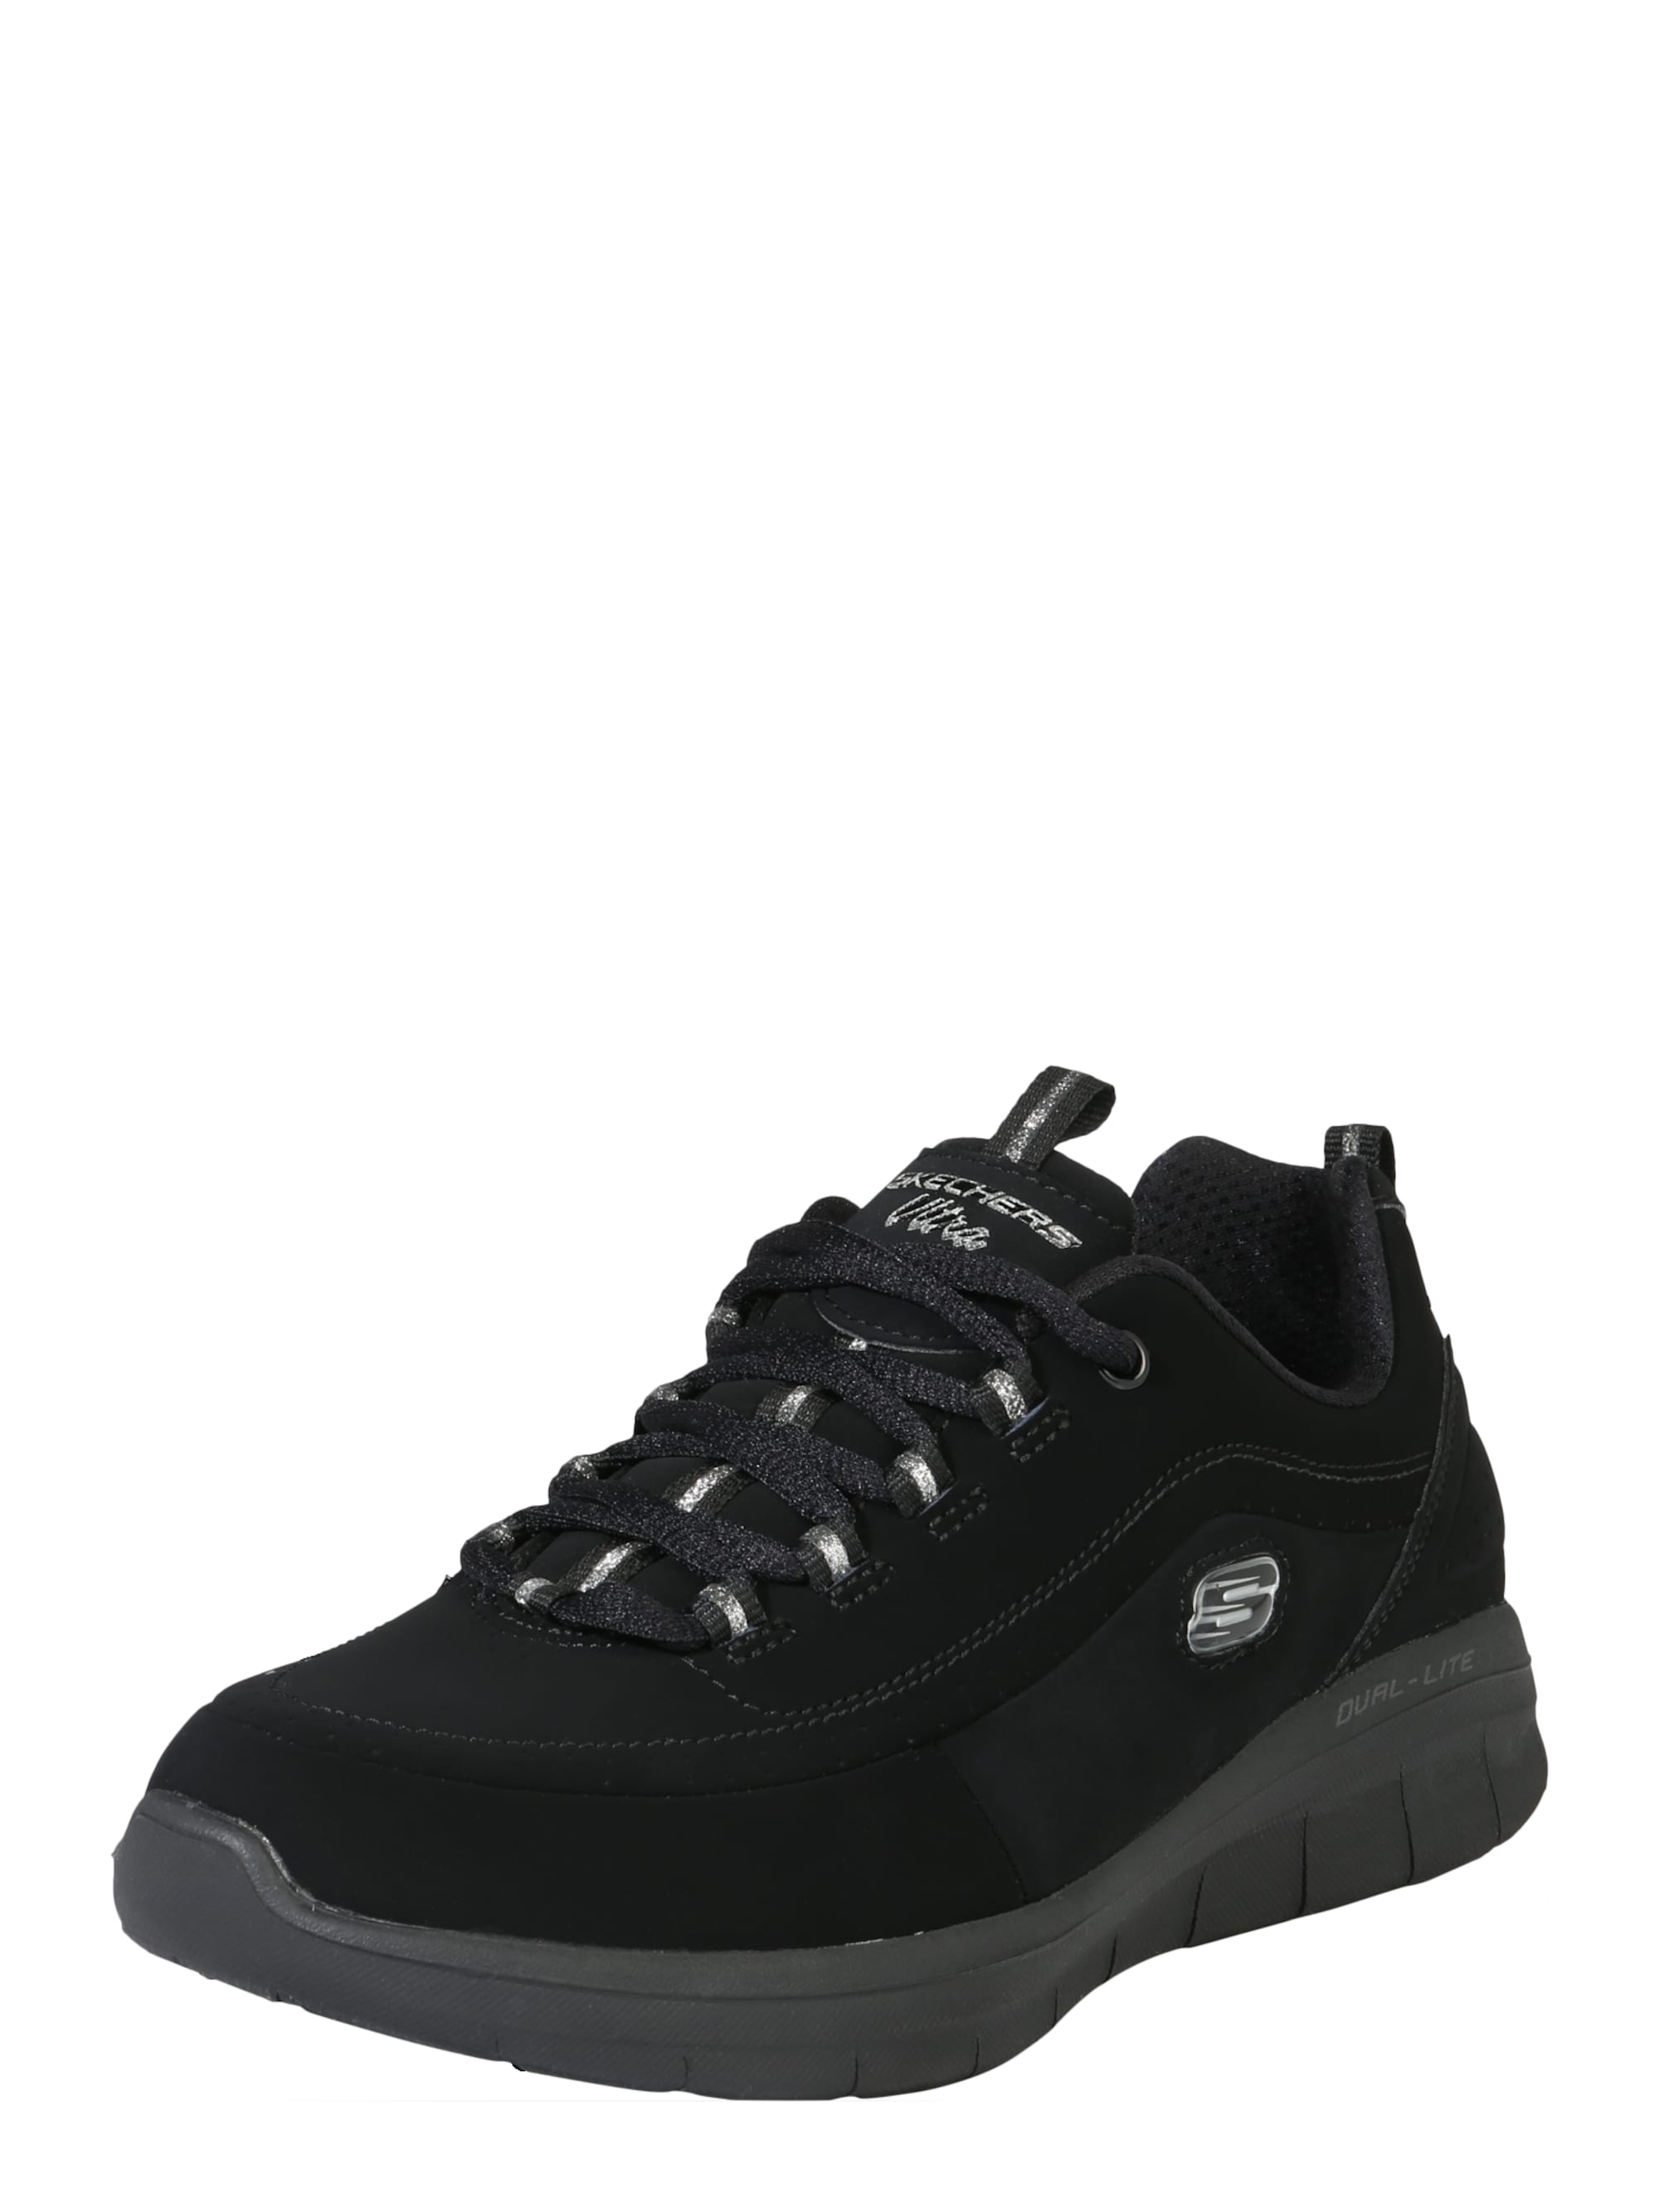 skechers - Sneakers ´SYNERGY 2.0 - SIDE-STEP´